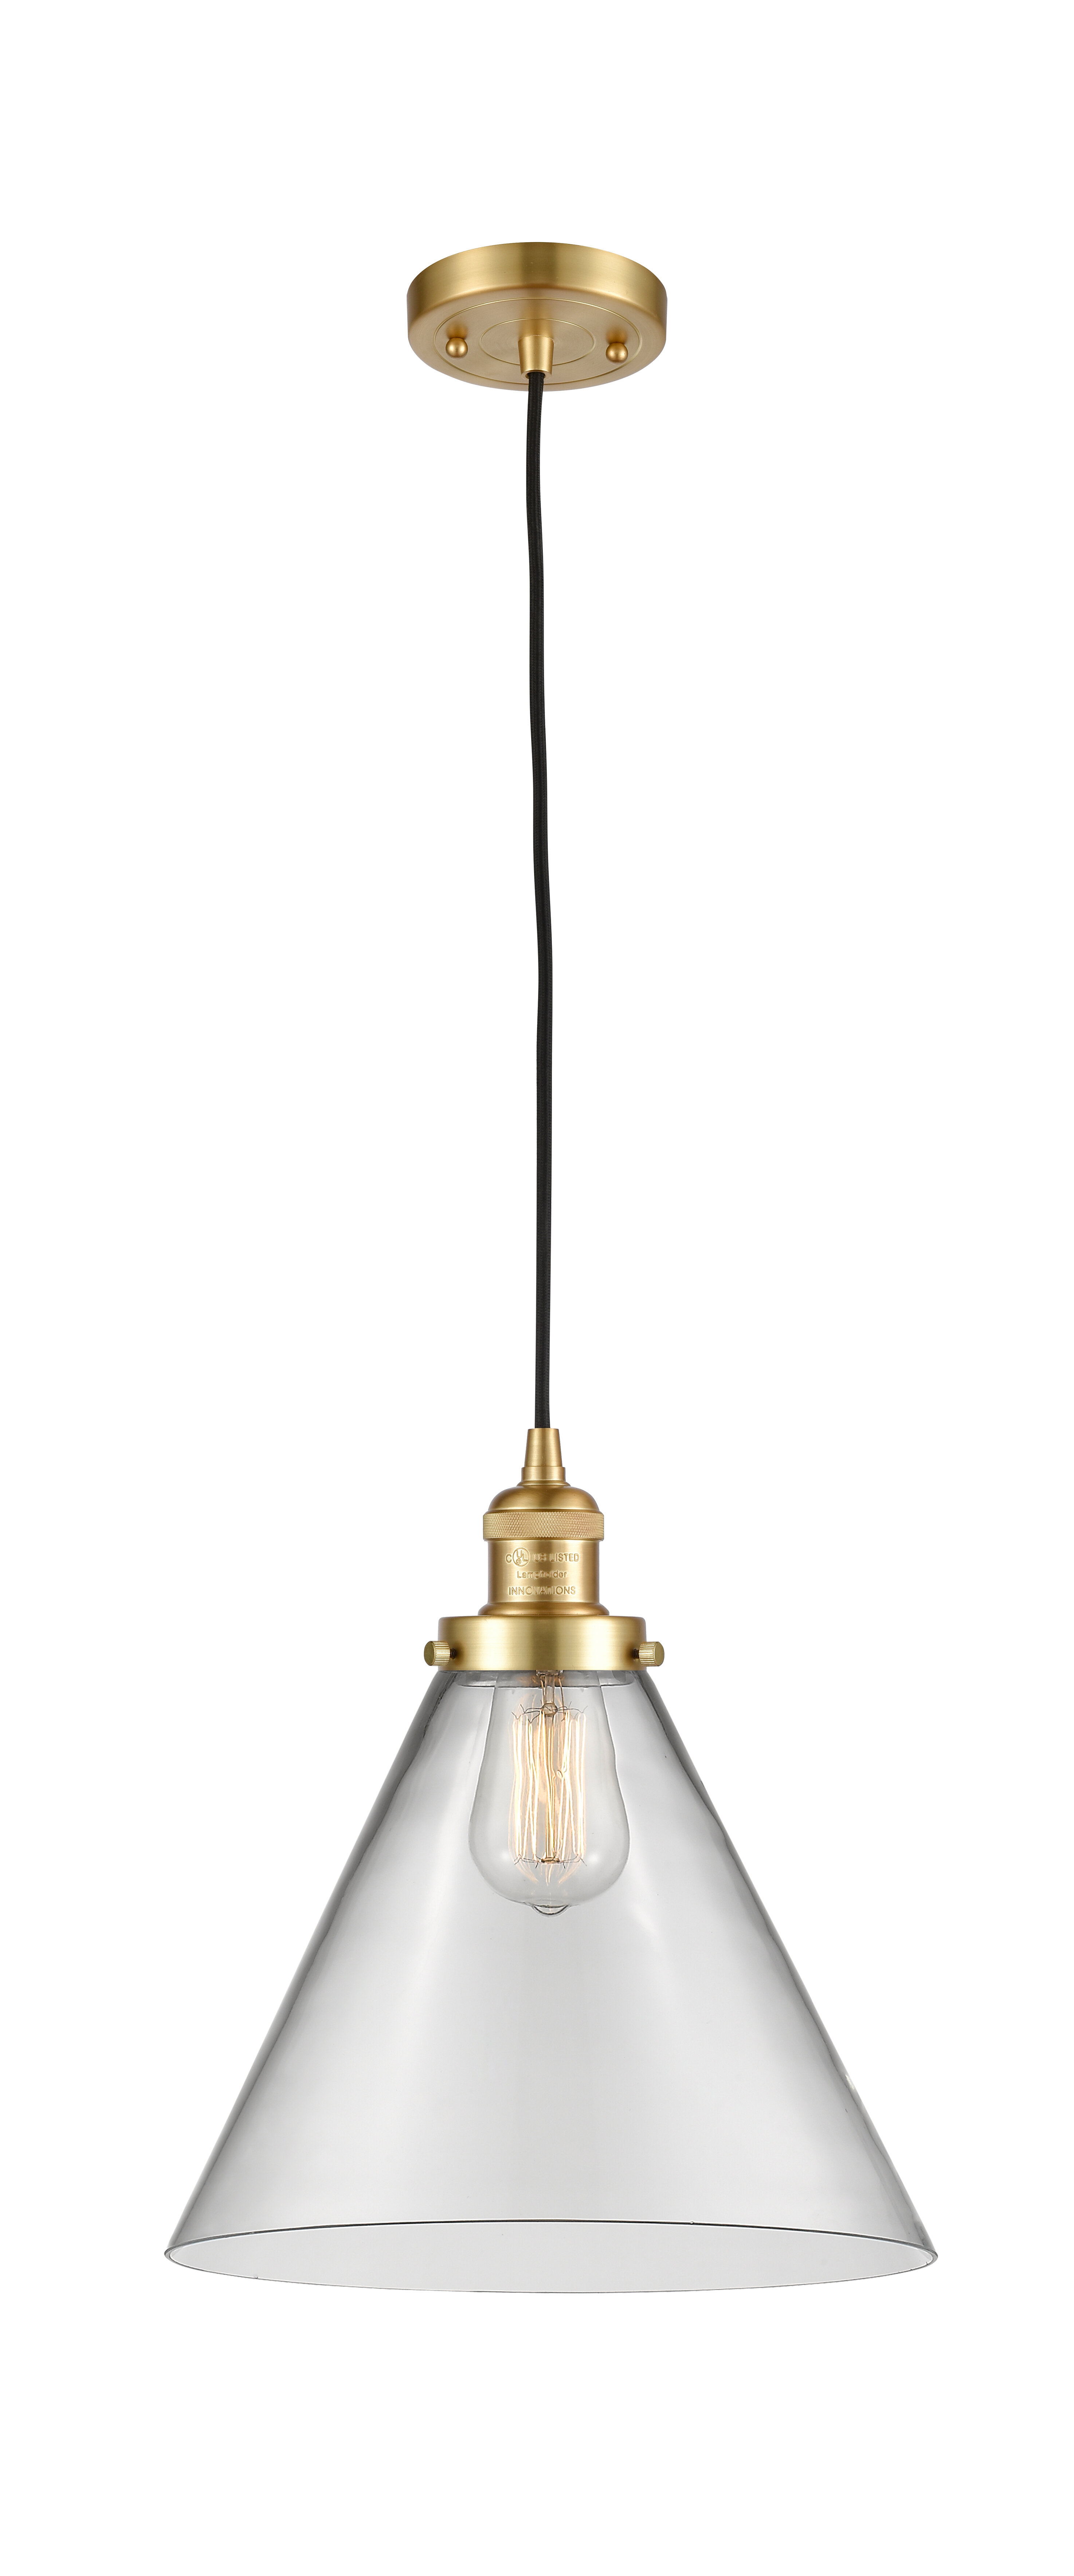 Highland Dunes Pendant Lighting You Ll Love In 2021 Wayfair